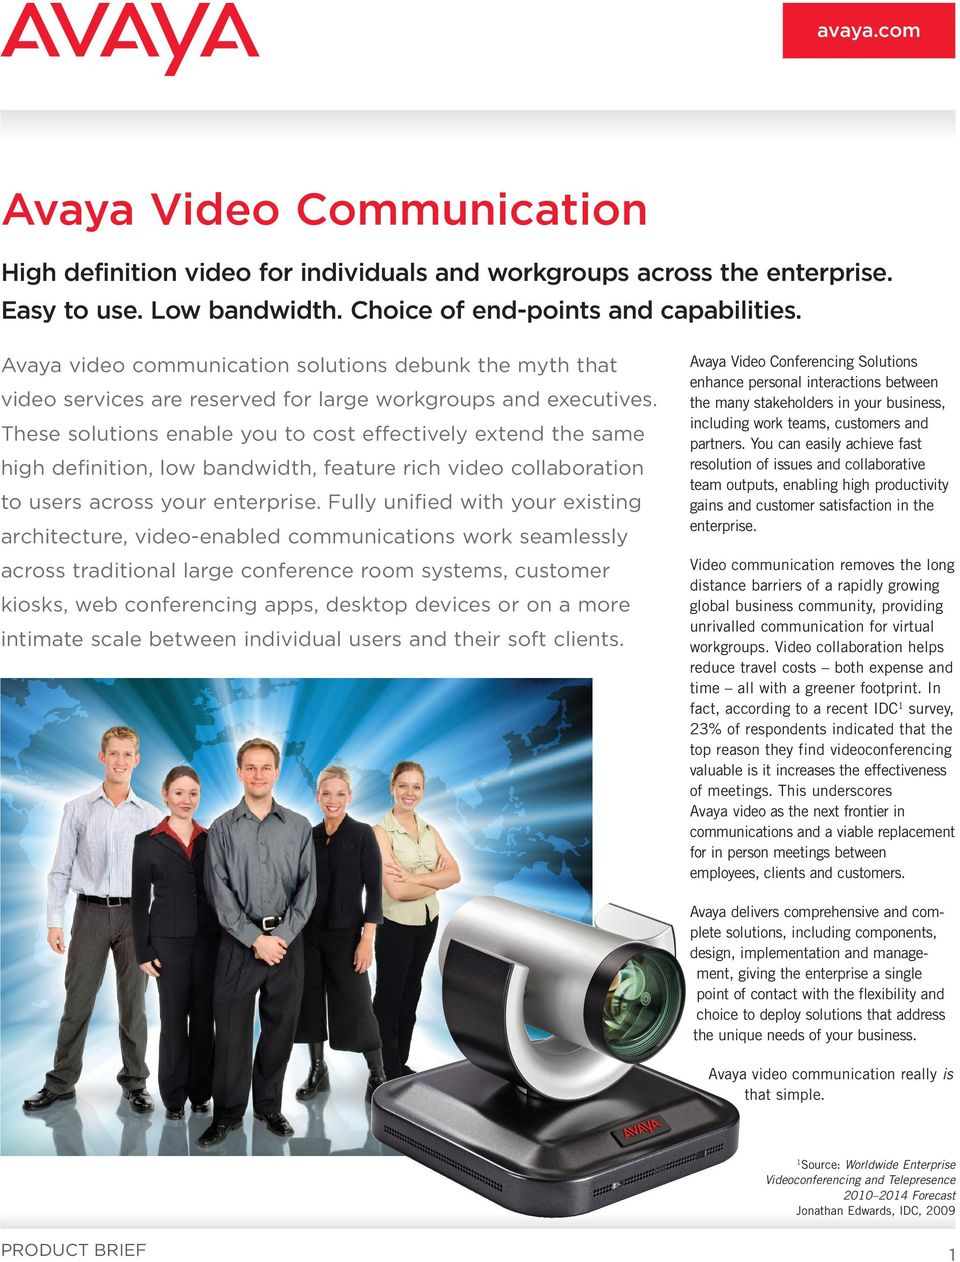 These solutions enable you to cost effectively extend the same high definition, low bandwidth, feature rich video collaboration to users across your enterprise.